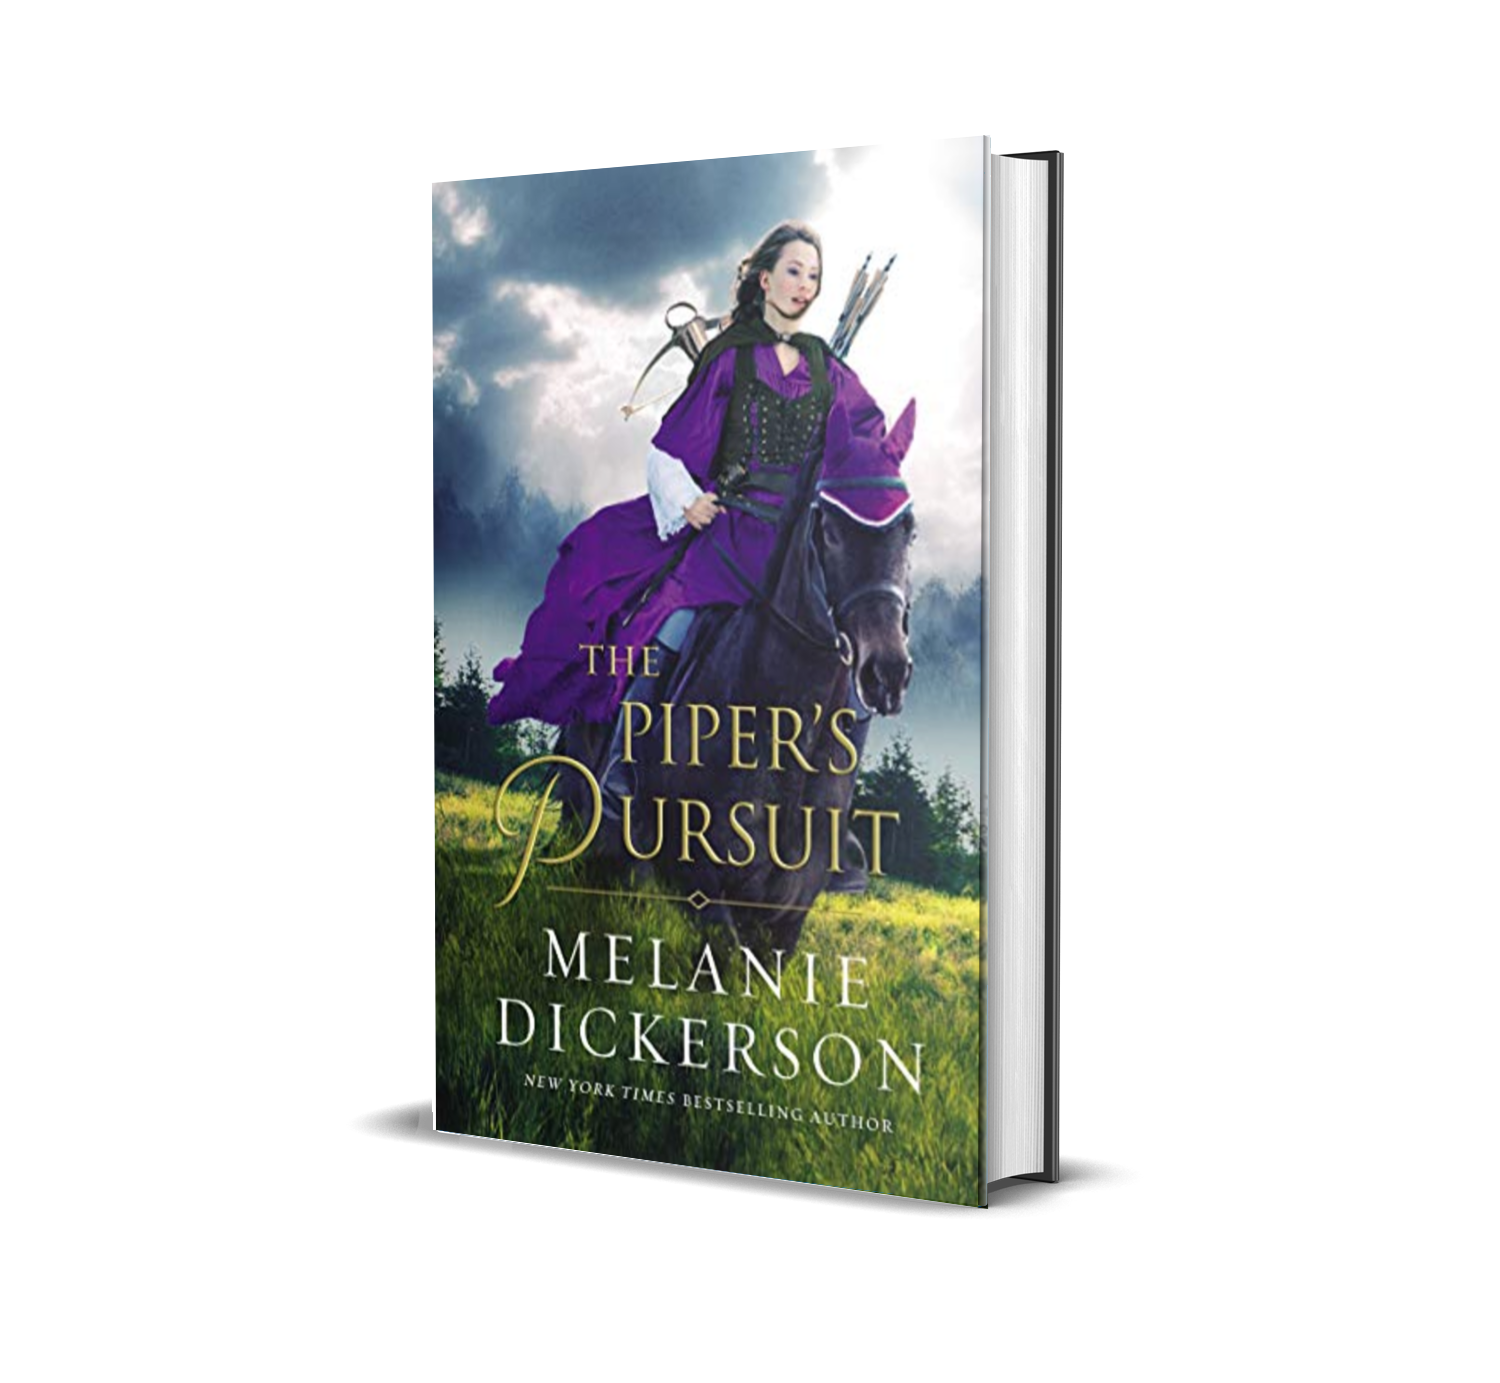 The Piper's Pursuit  by Melanie Dickerson